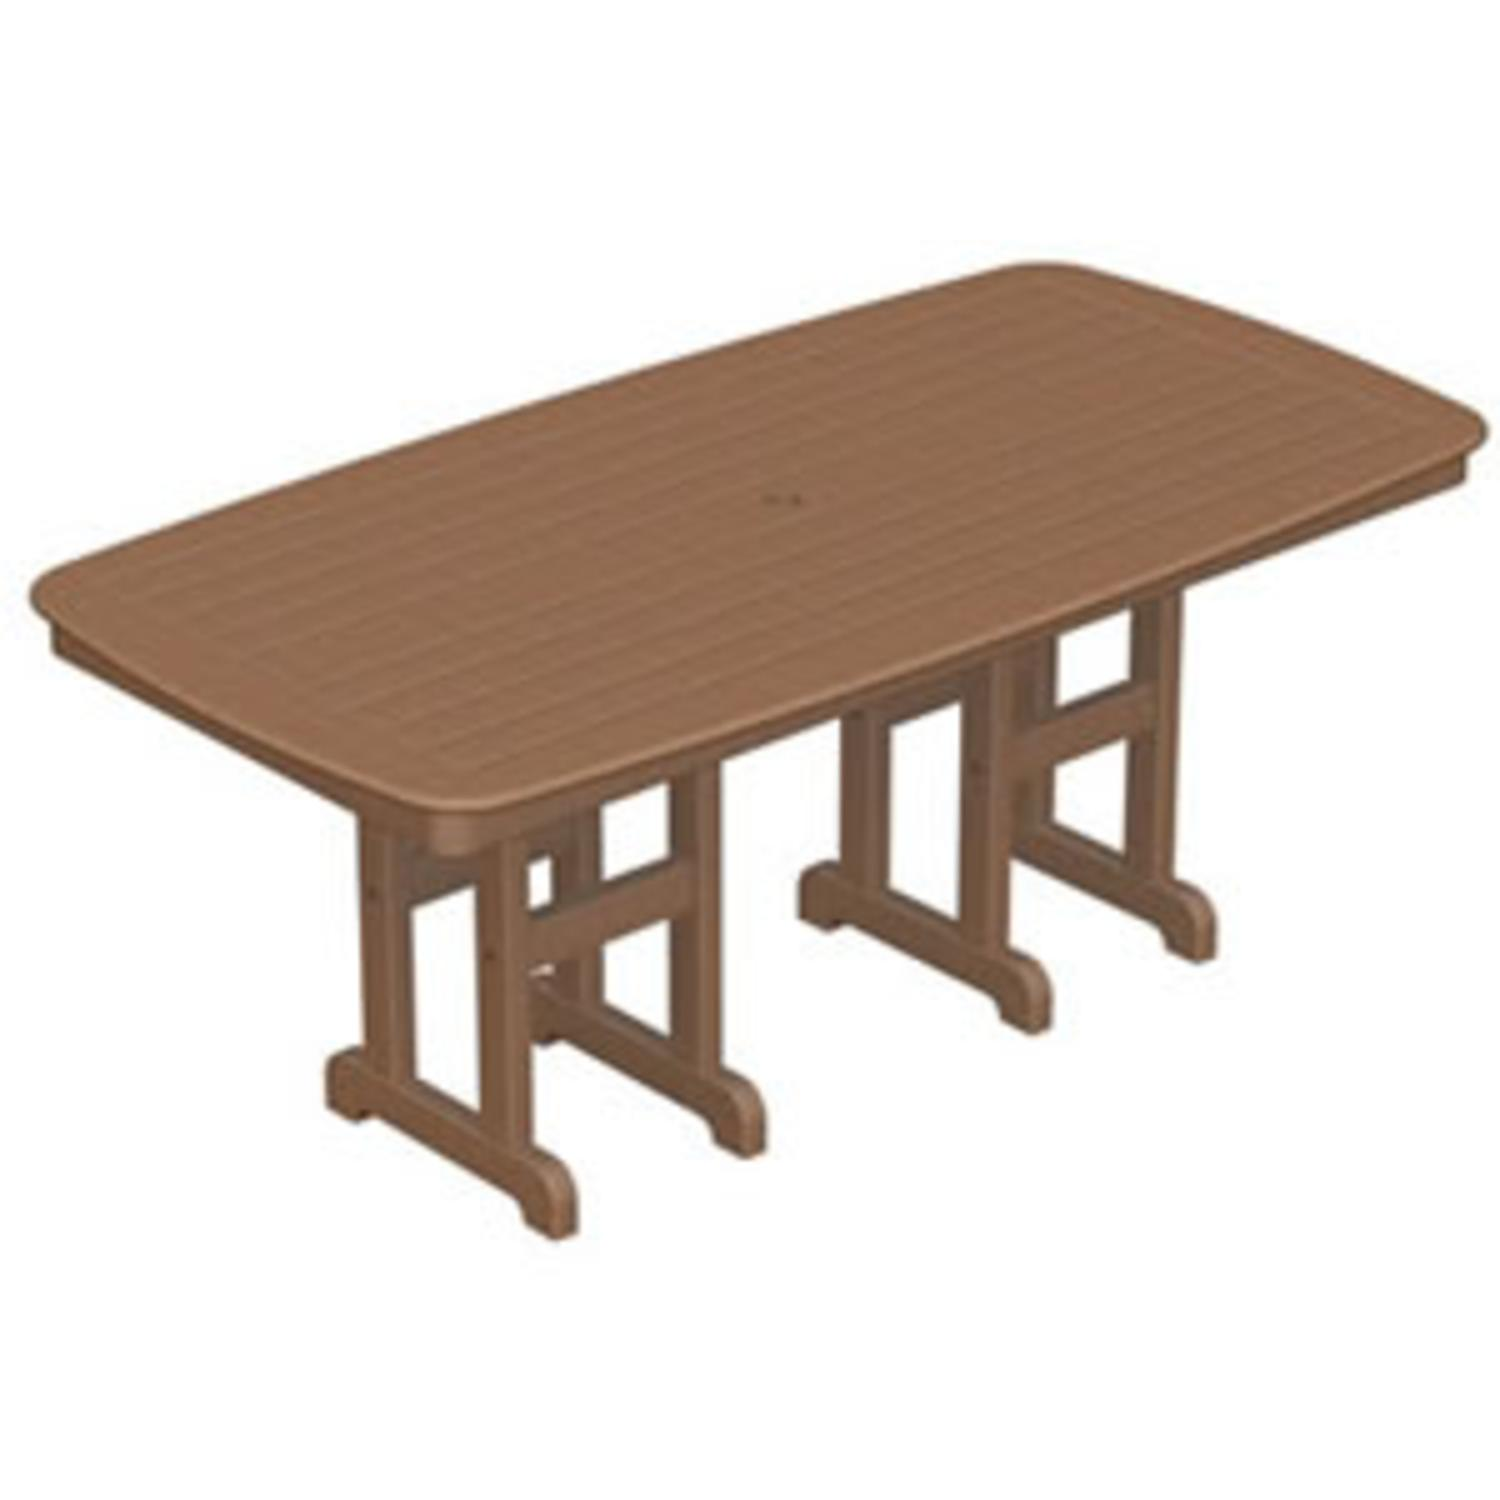 "71"" Recycled Earth-Friendly Cape Cod Outdoor Patio Dining Table - Raw Sienna"